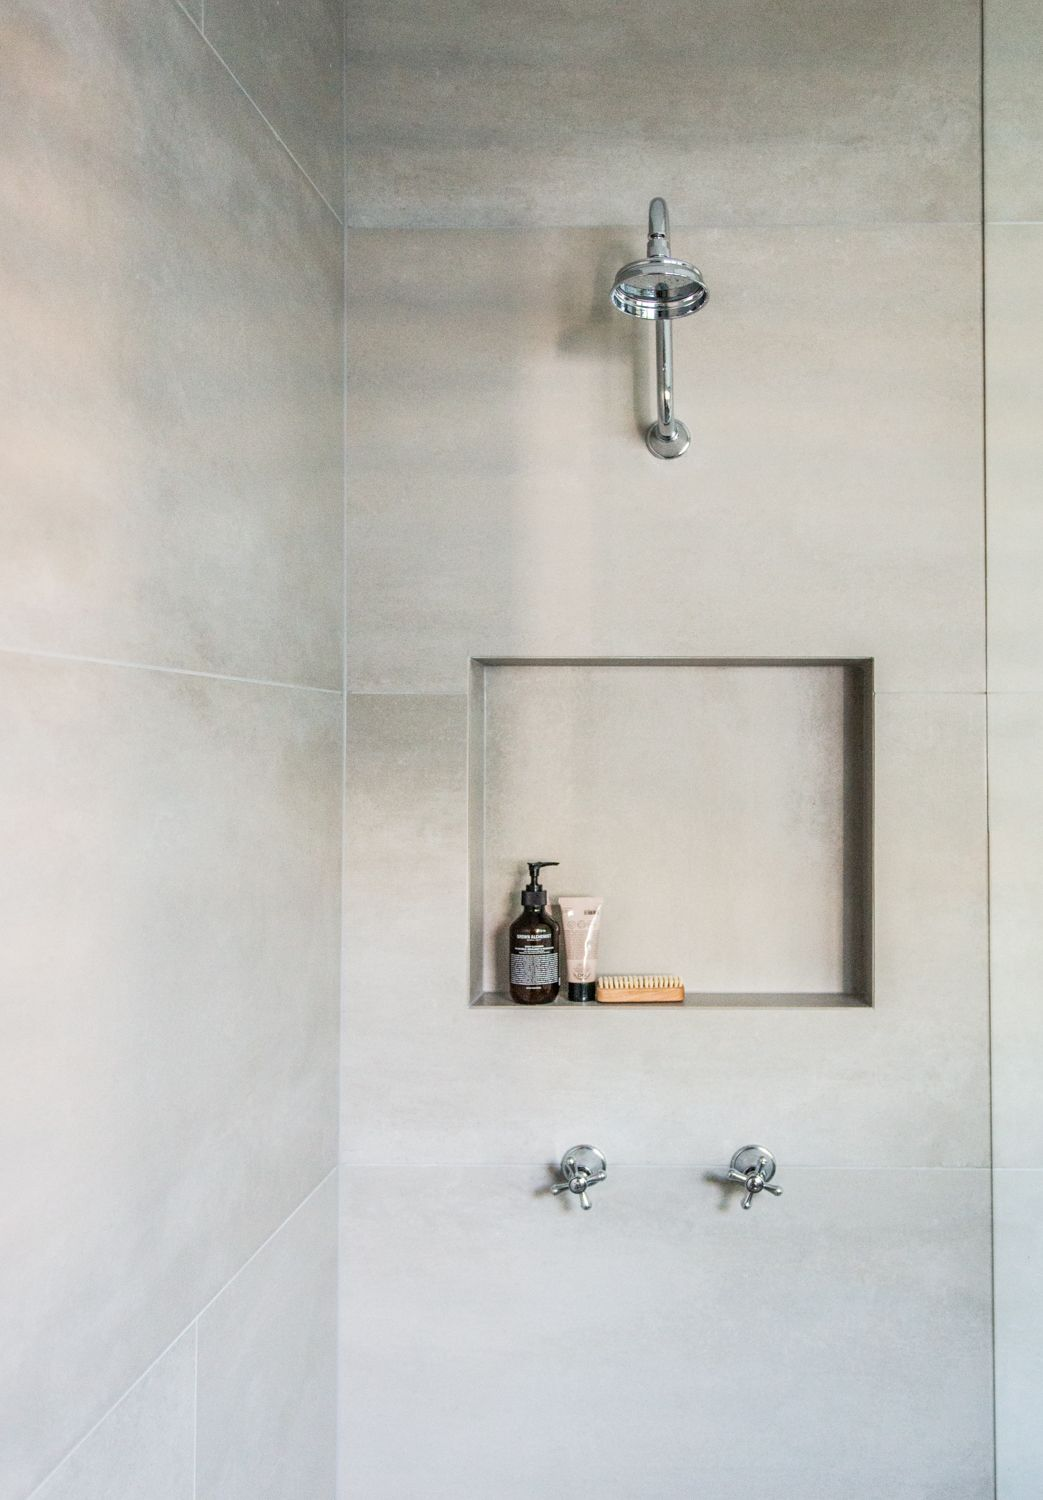 Large Format Tiles In A Shower Area Means Less Grout To Clean